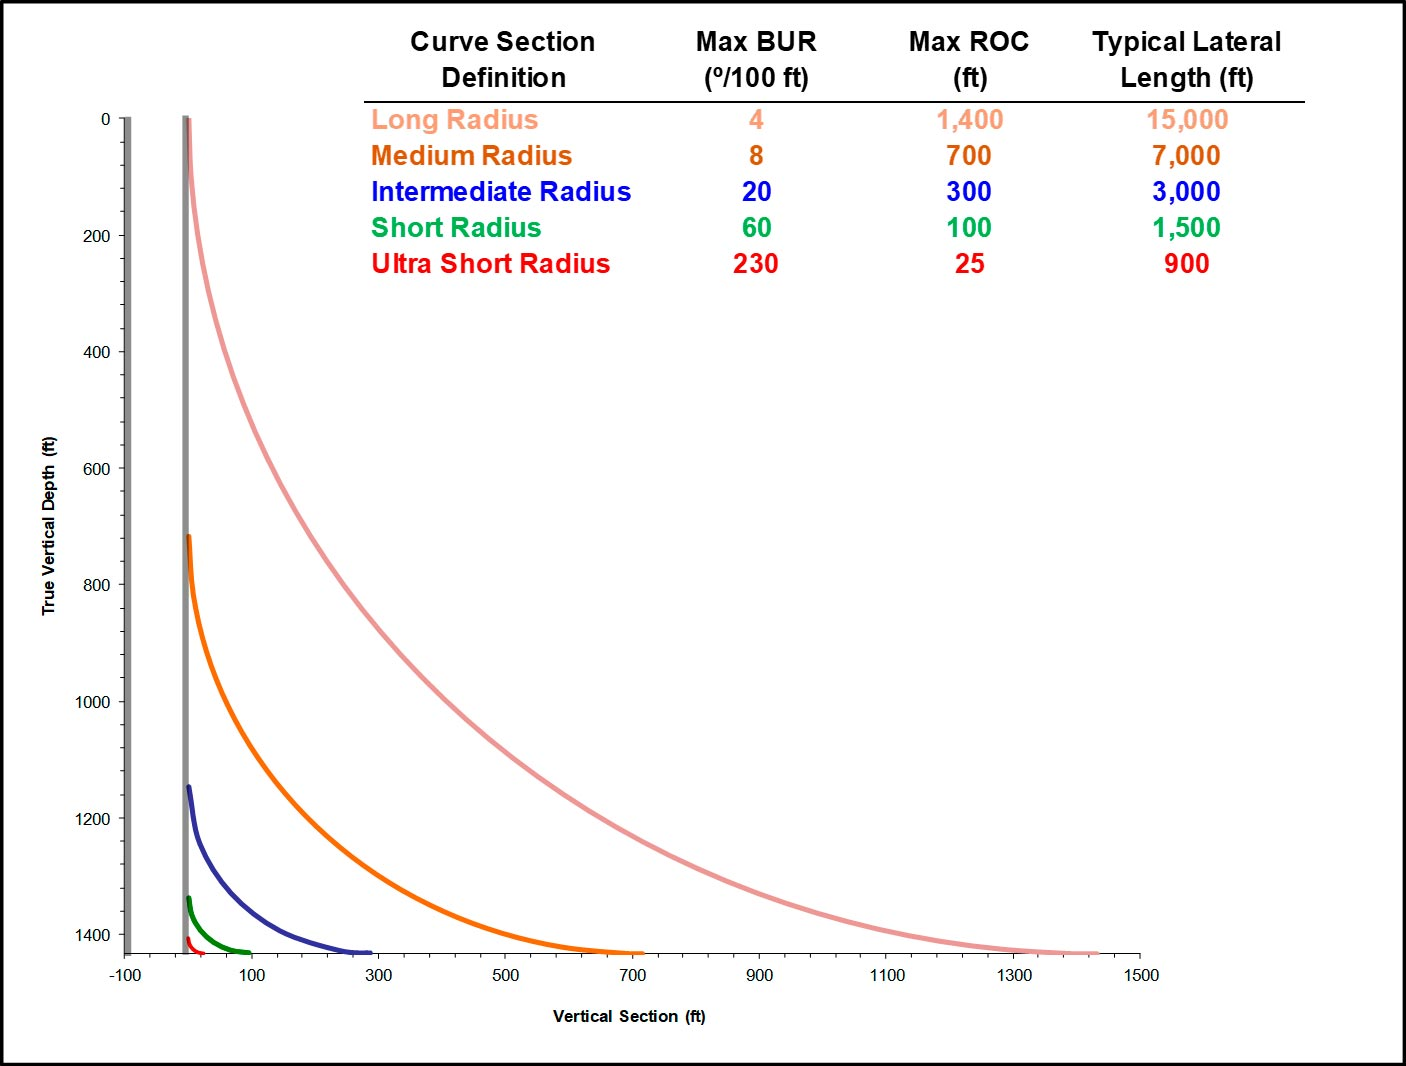 Technology graph showing differences in curve section and lateral length of different types of radiuses